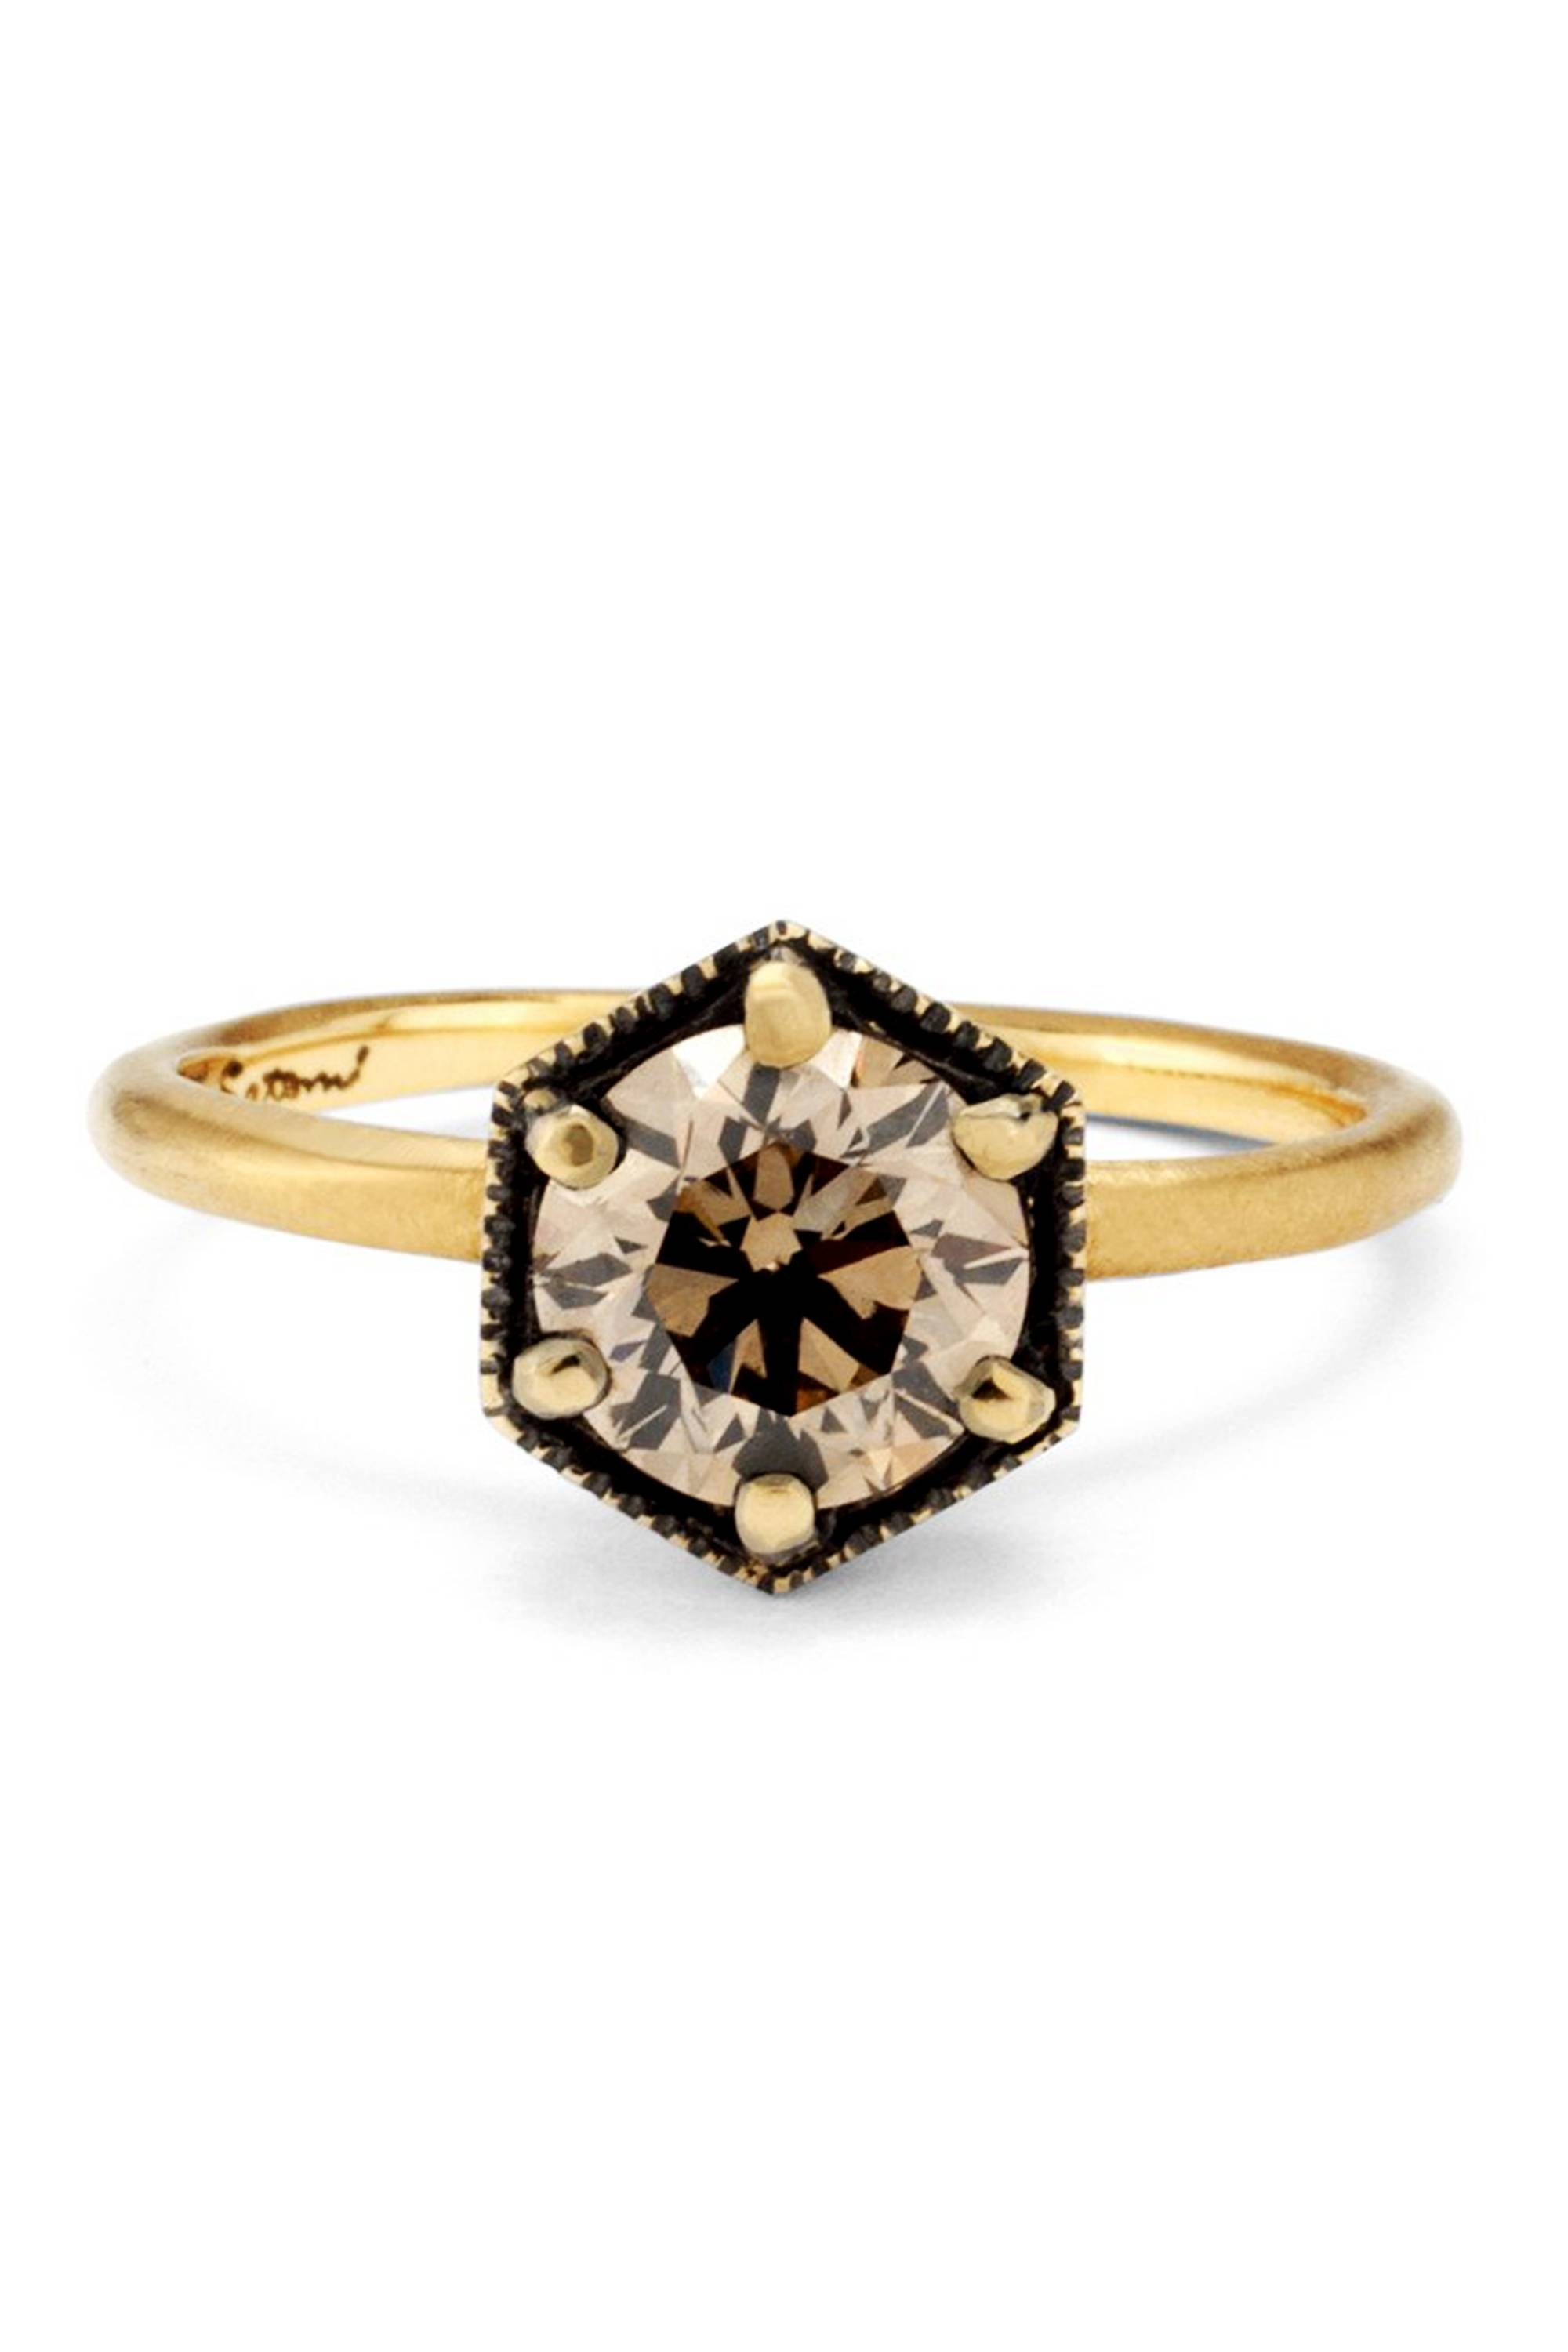 erika fine flower trends jewelry style engagement us blog ring en floral rings winters gia